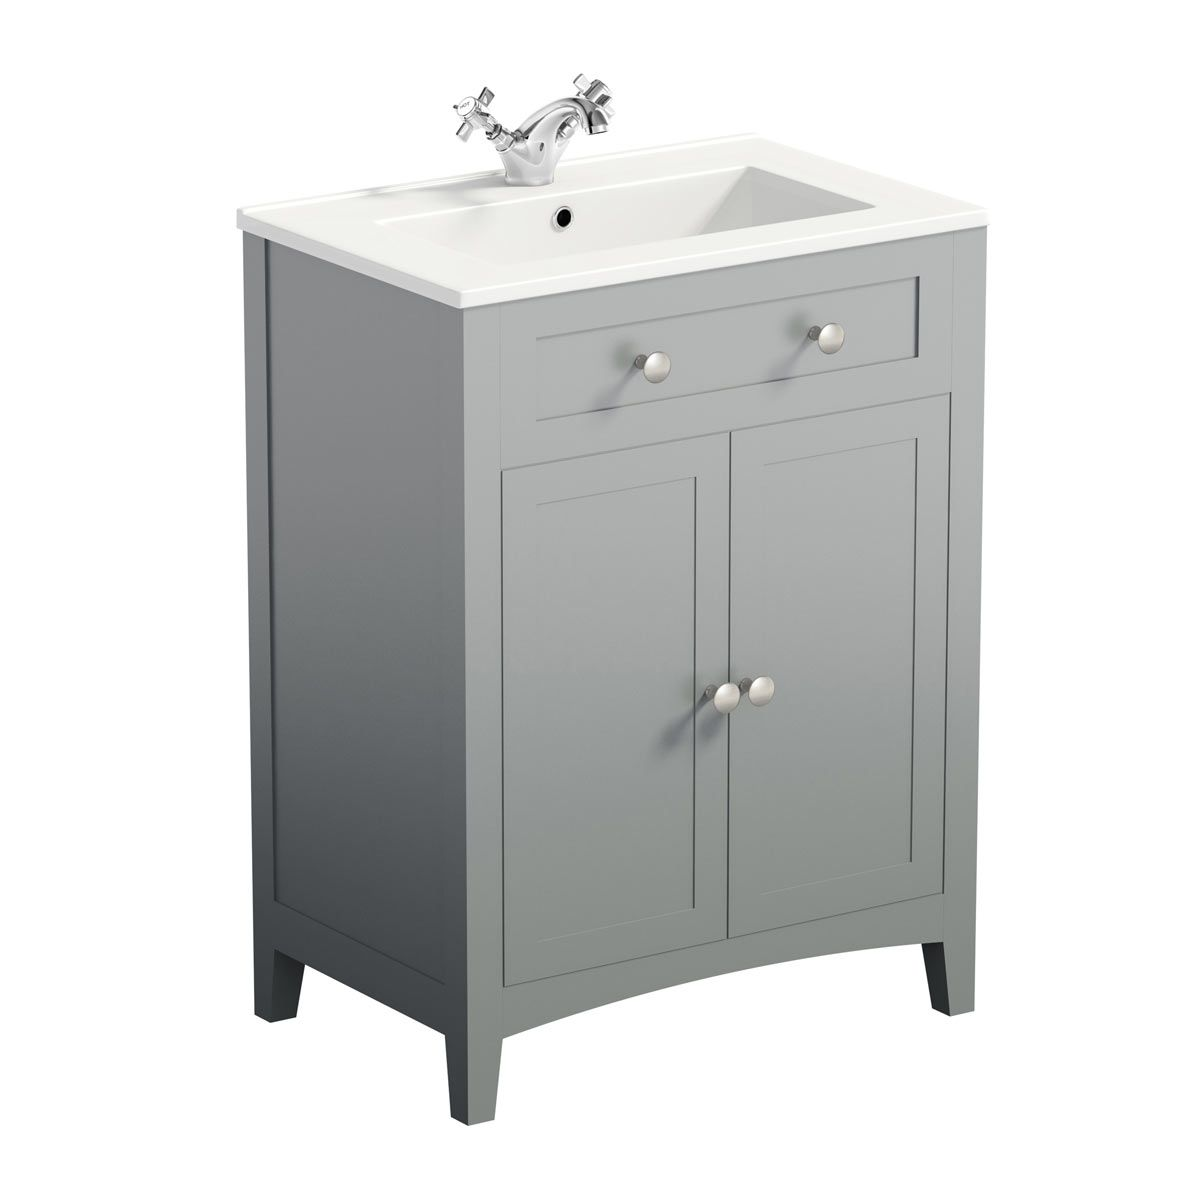 Digital Art Gallery The Bath Co Camberley grey vanity unit with basin mixer